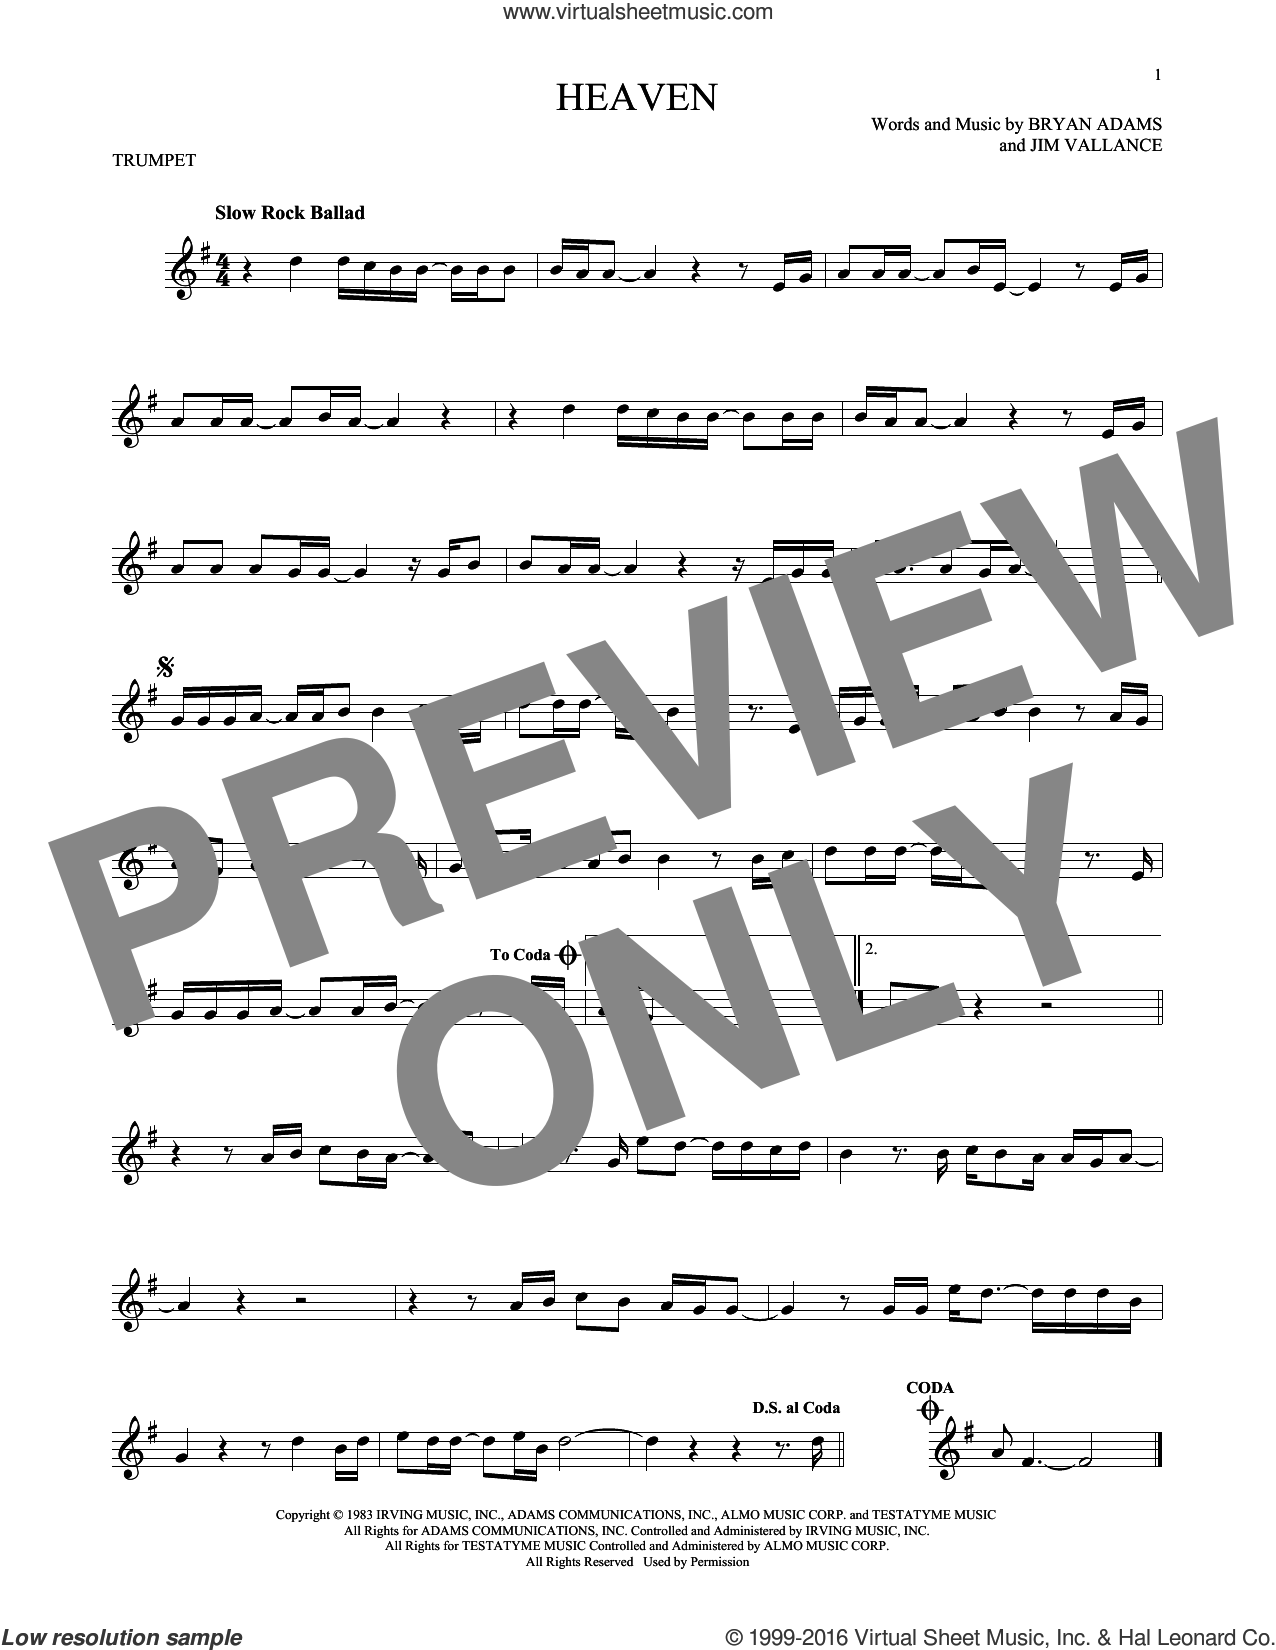 Heaven sheet music for trumpet solo by Bryan Adams and Jim Vallance, intermediate